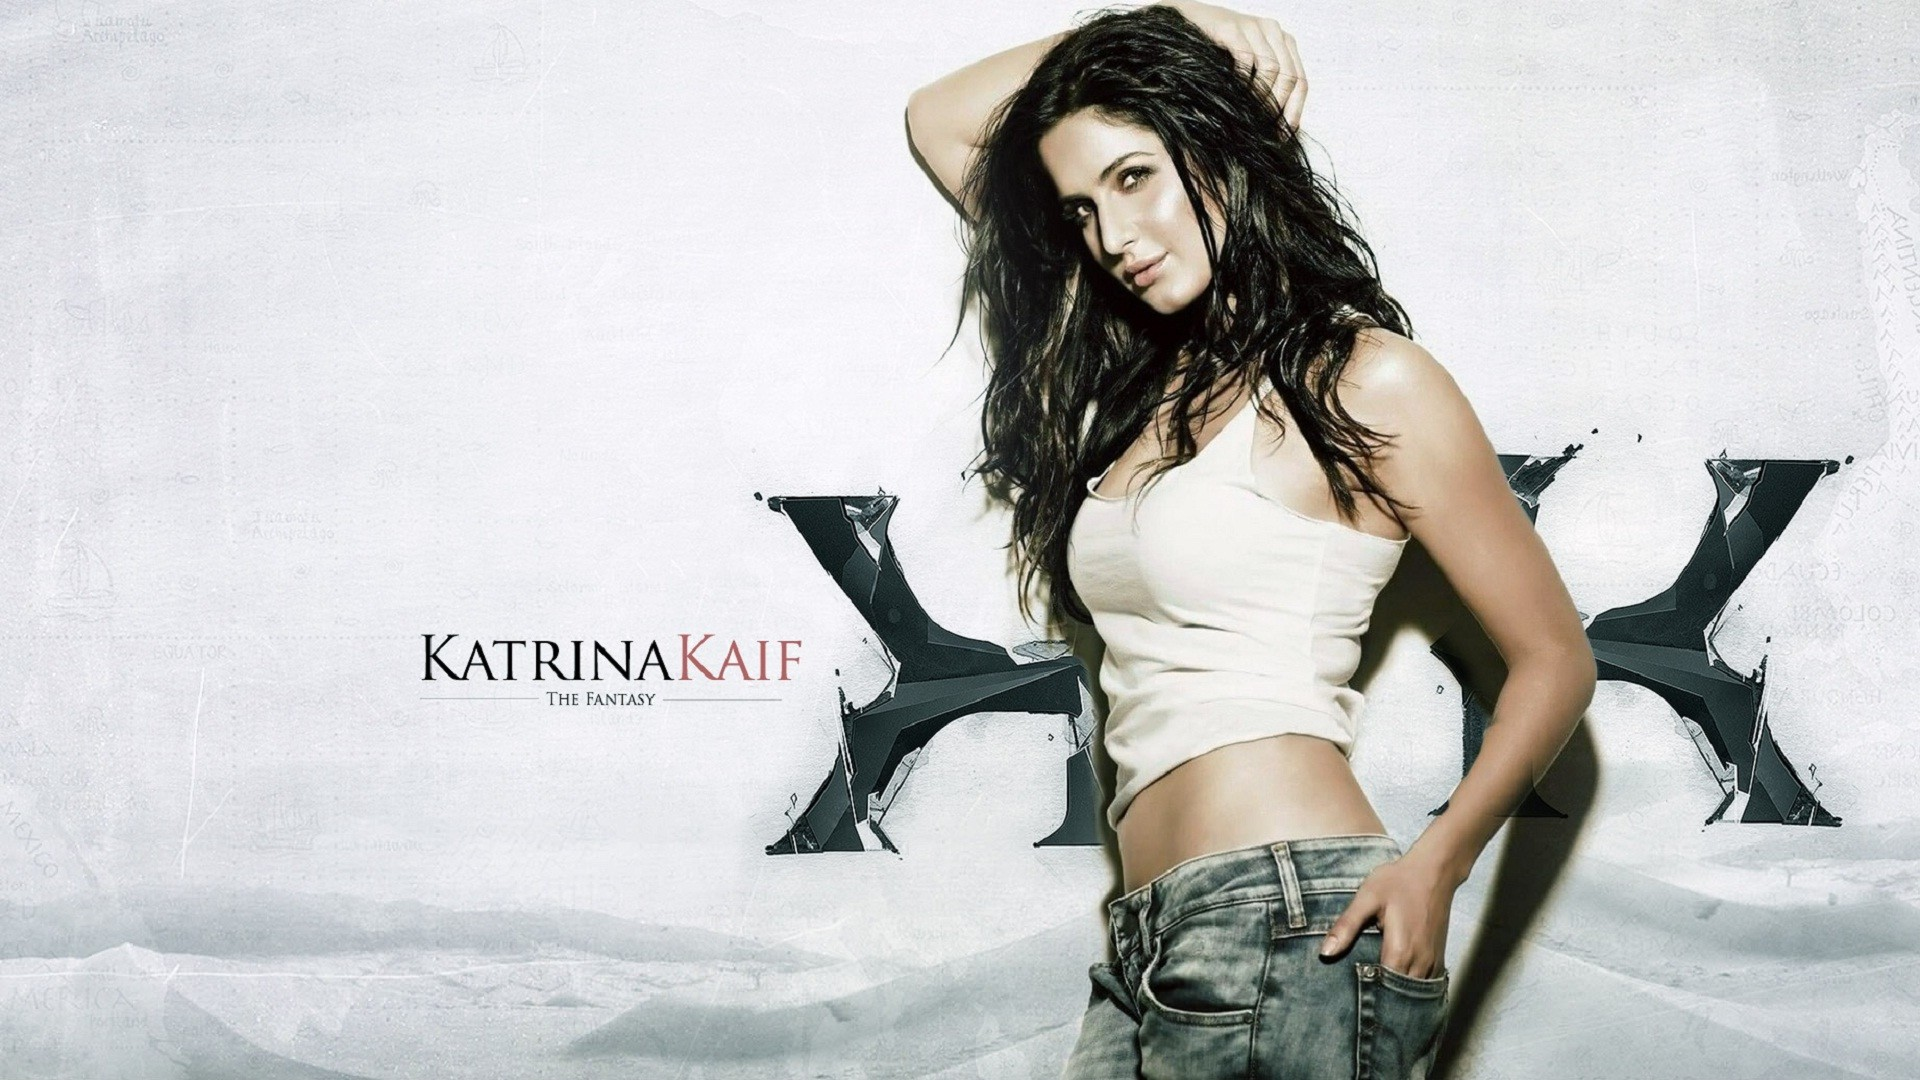 katrina kaif hd wallpapers 1080p (85+ background pictures)